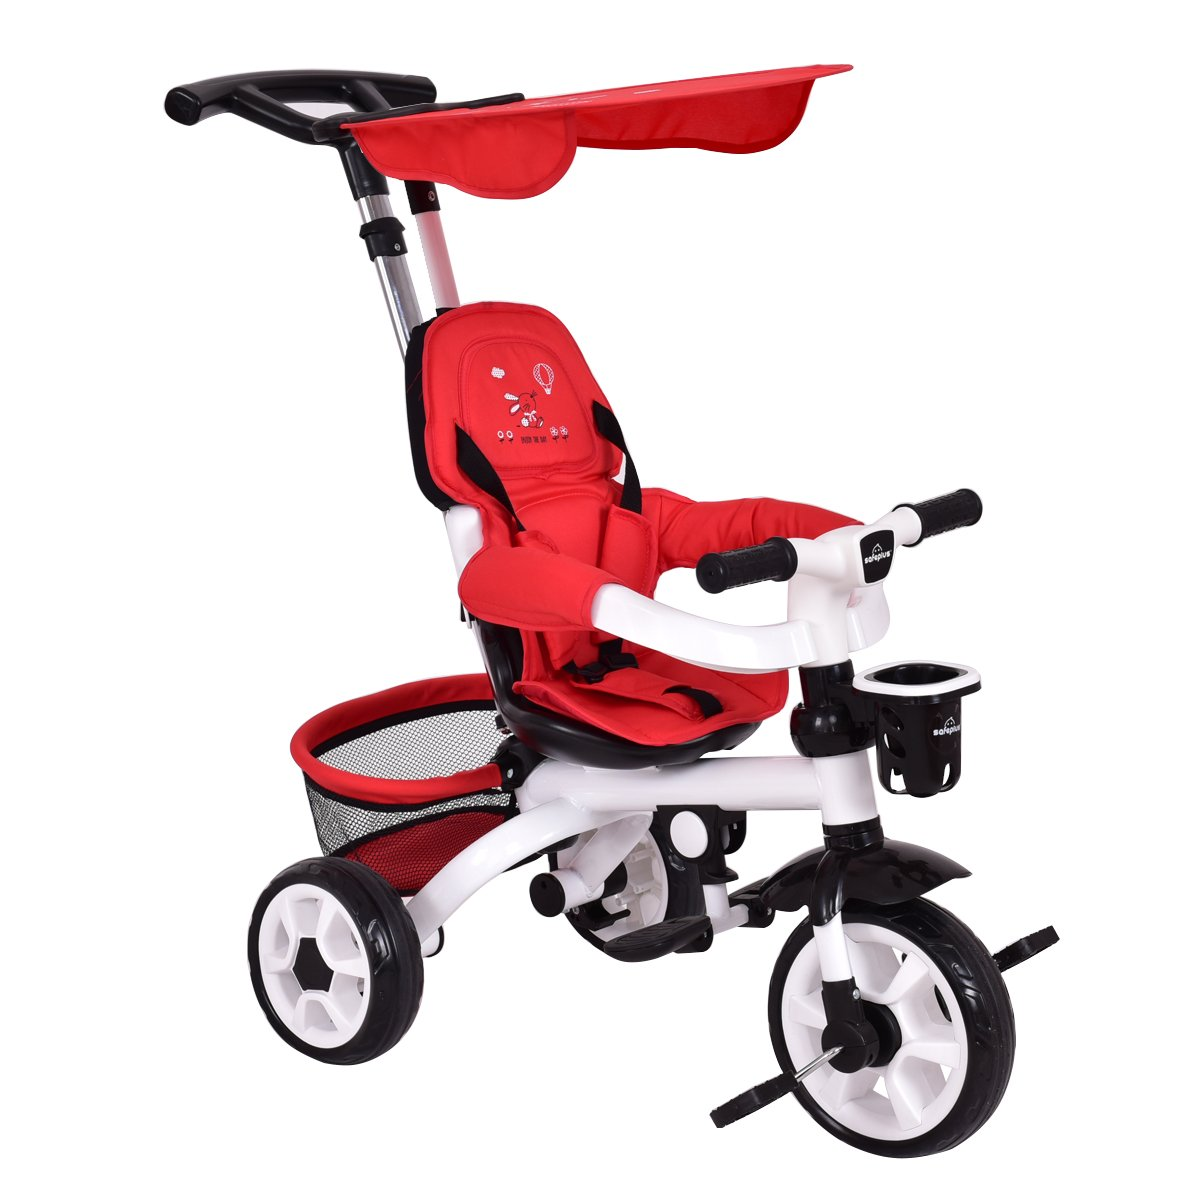 Costzon 4-In-1 Baby Tricycle Steer Stroller Detachable Learning Bike w/ Canopy Basket (Red)